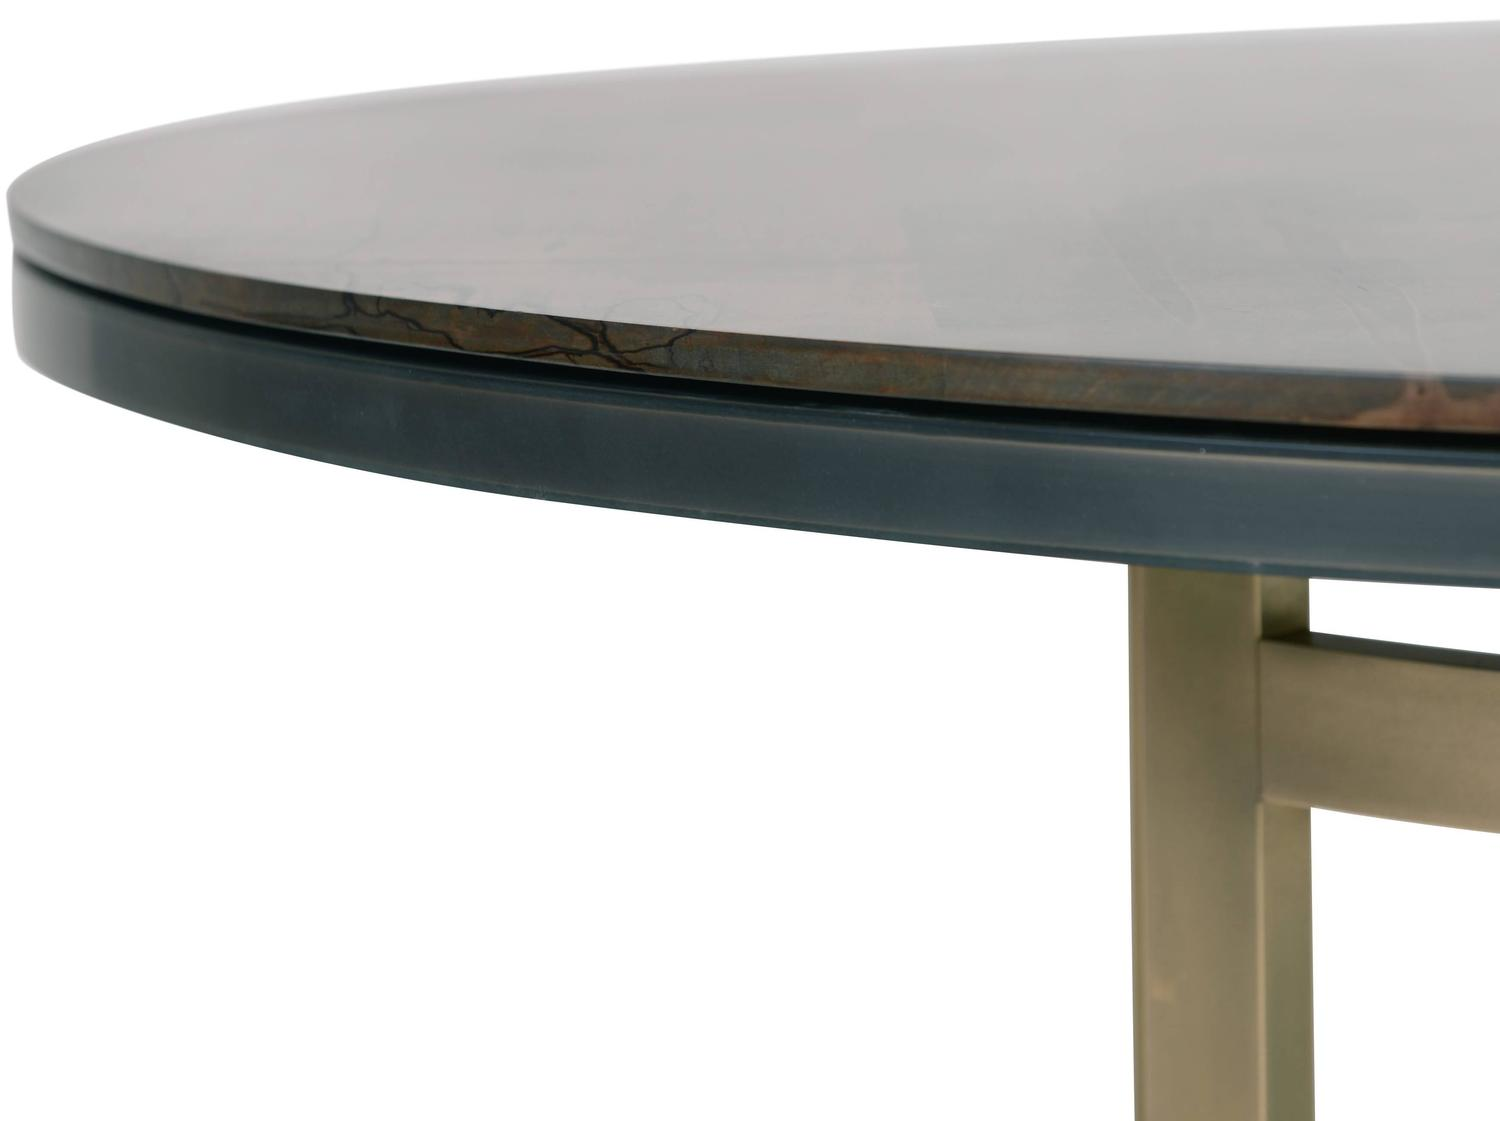 Gotham Coffee Table Customizable Wood Metal And Resin For Sale At 1stdibs